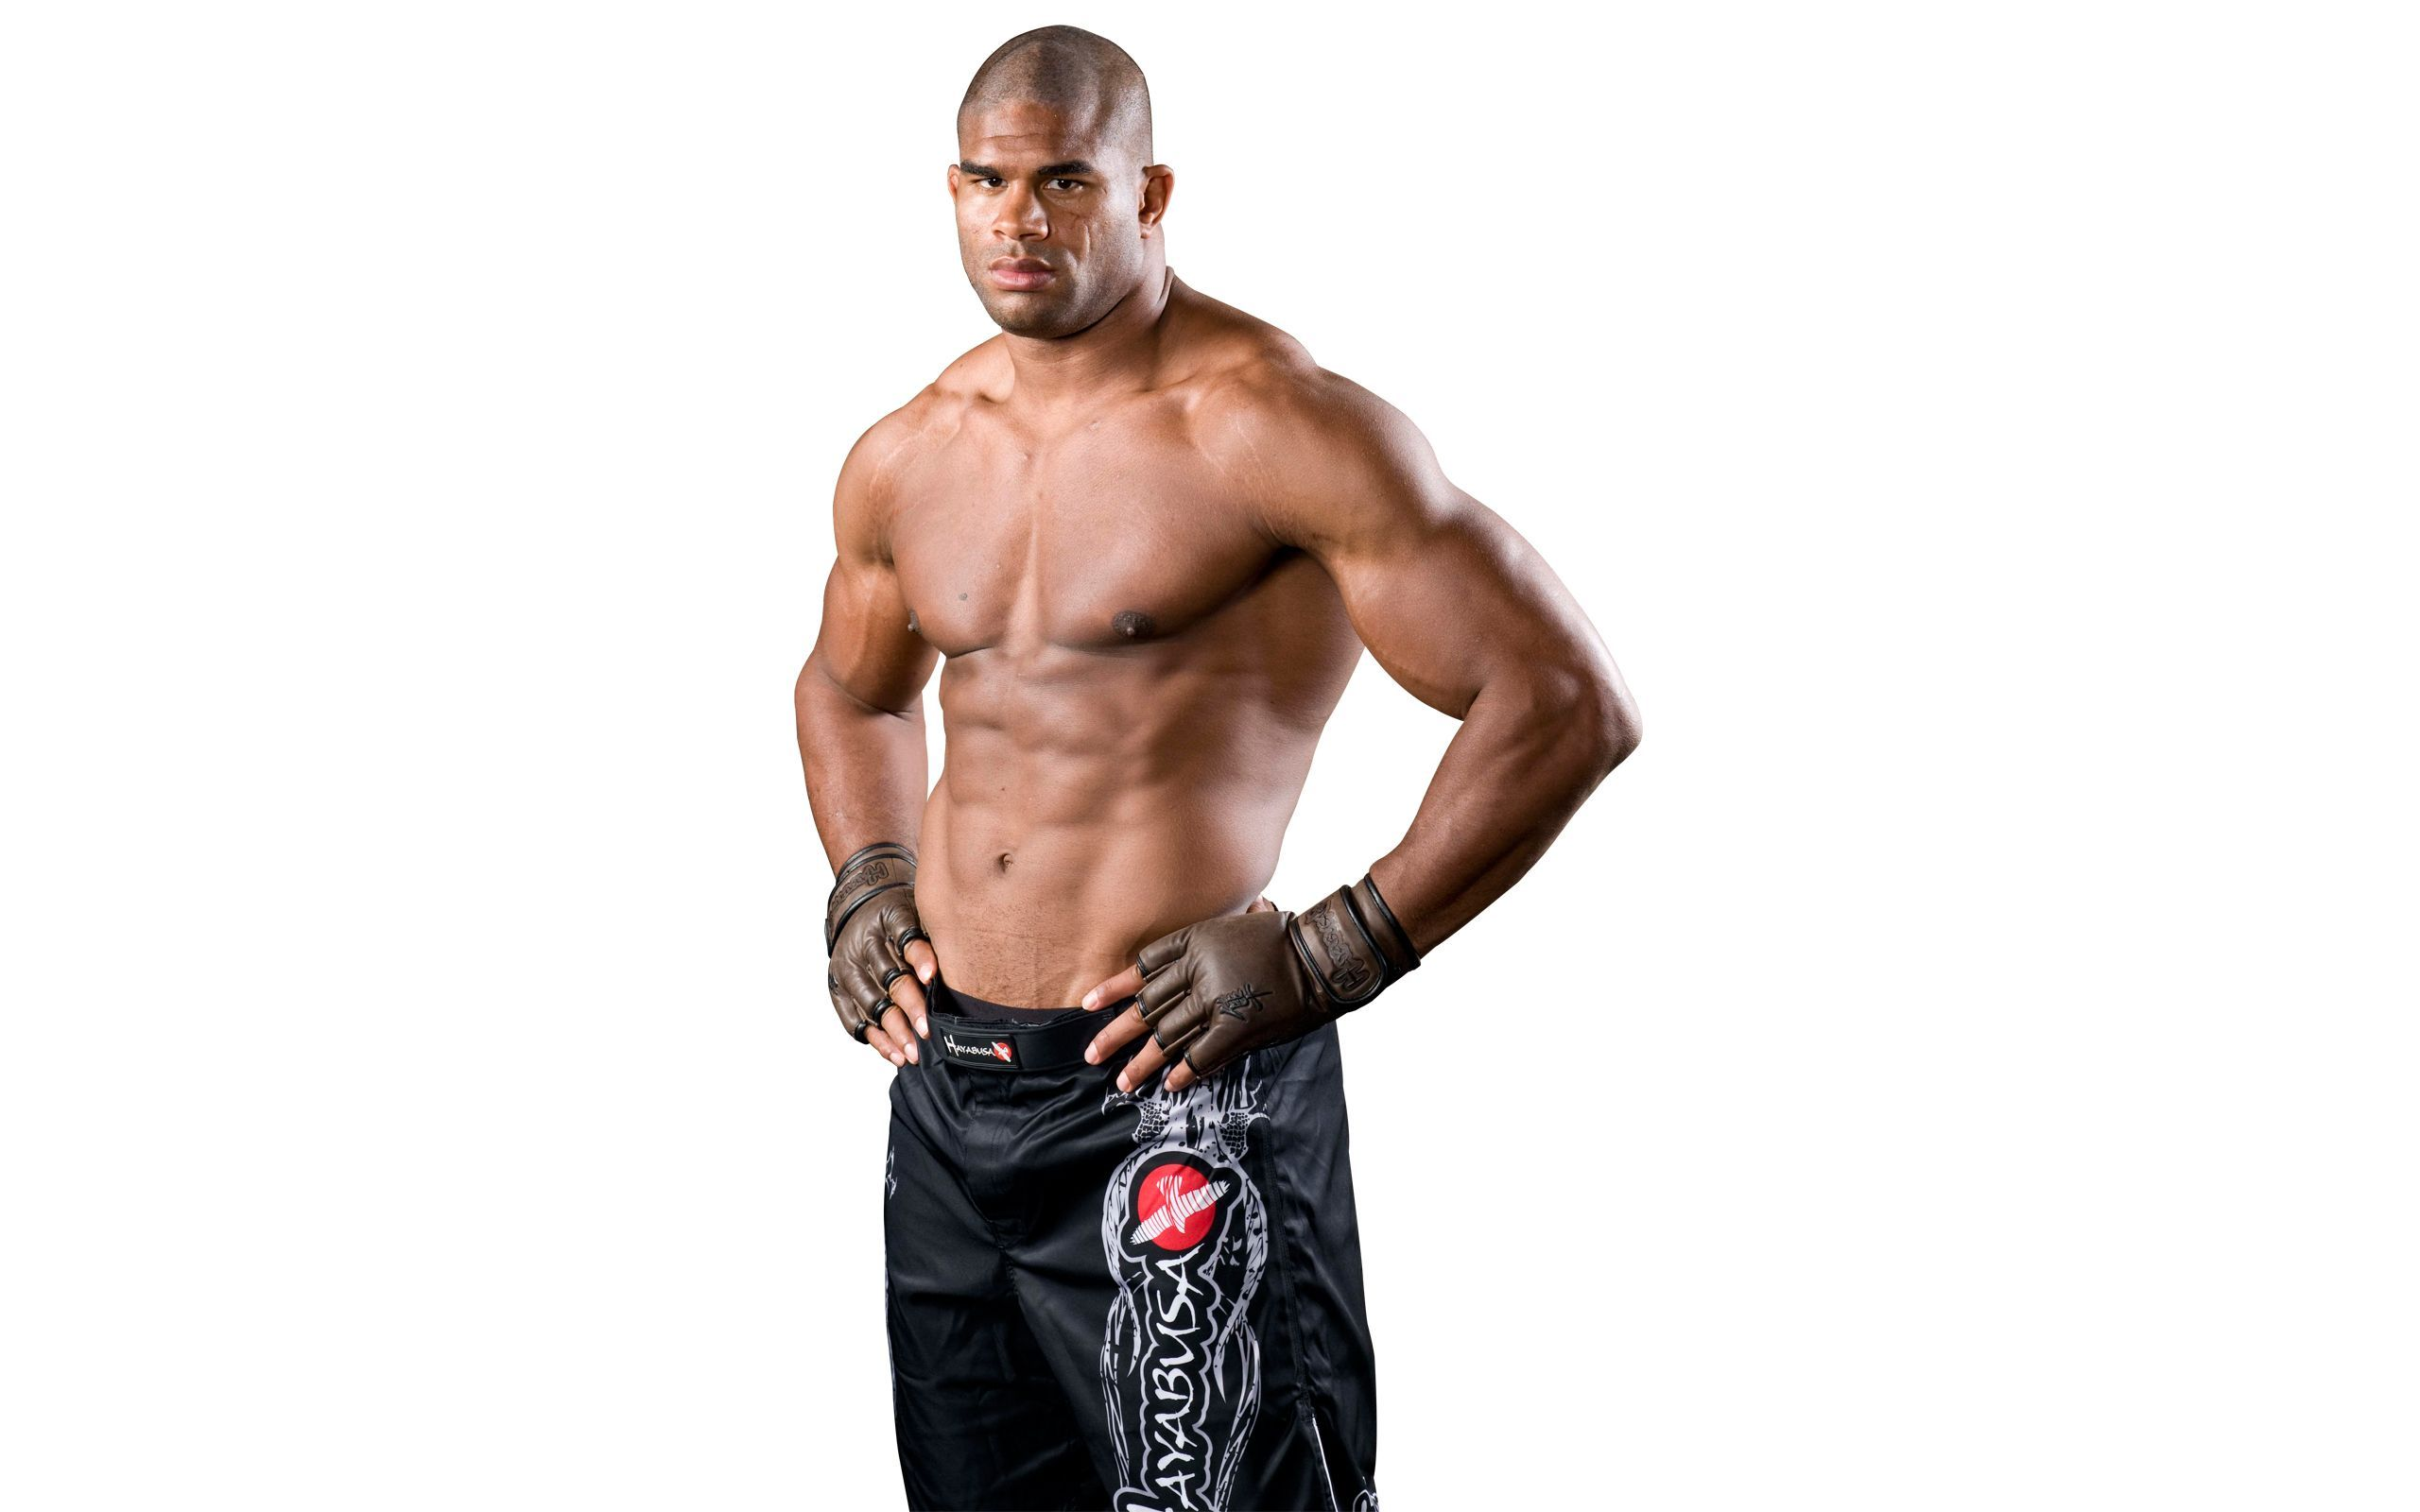 2560x1600 - Alistair Overeem Wallpapers 4